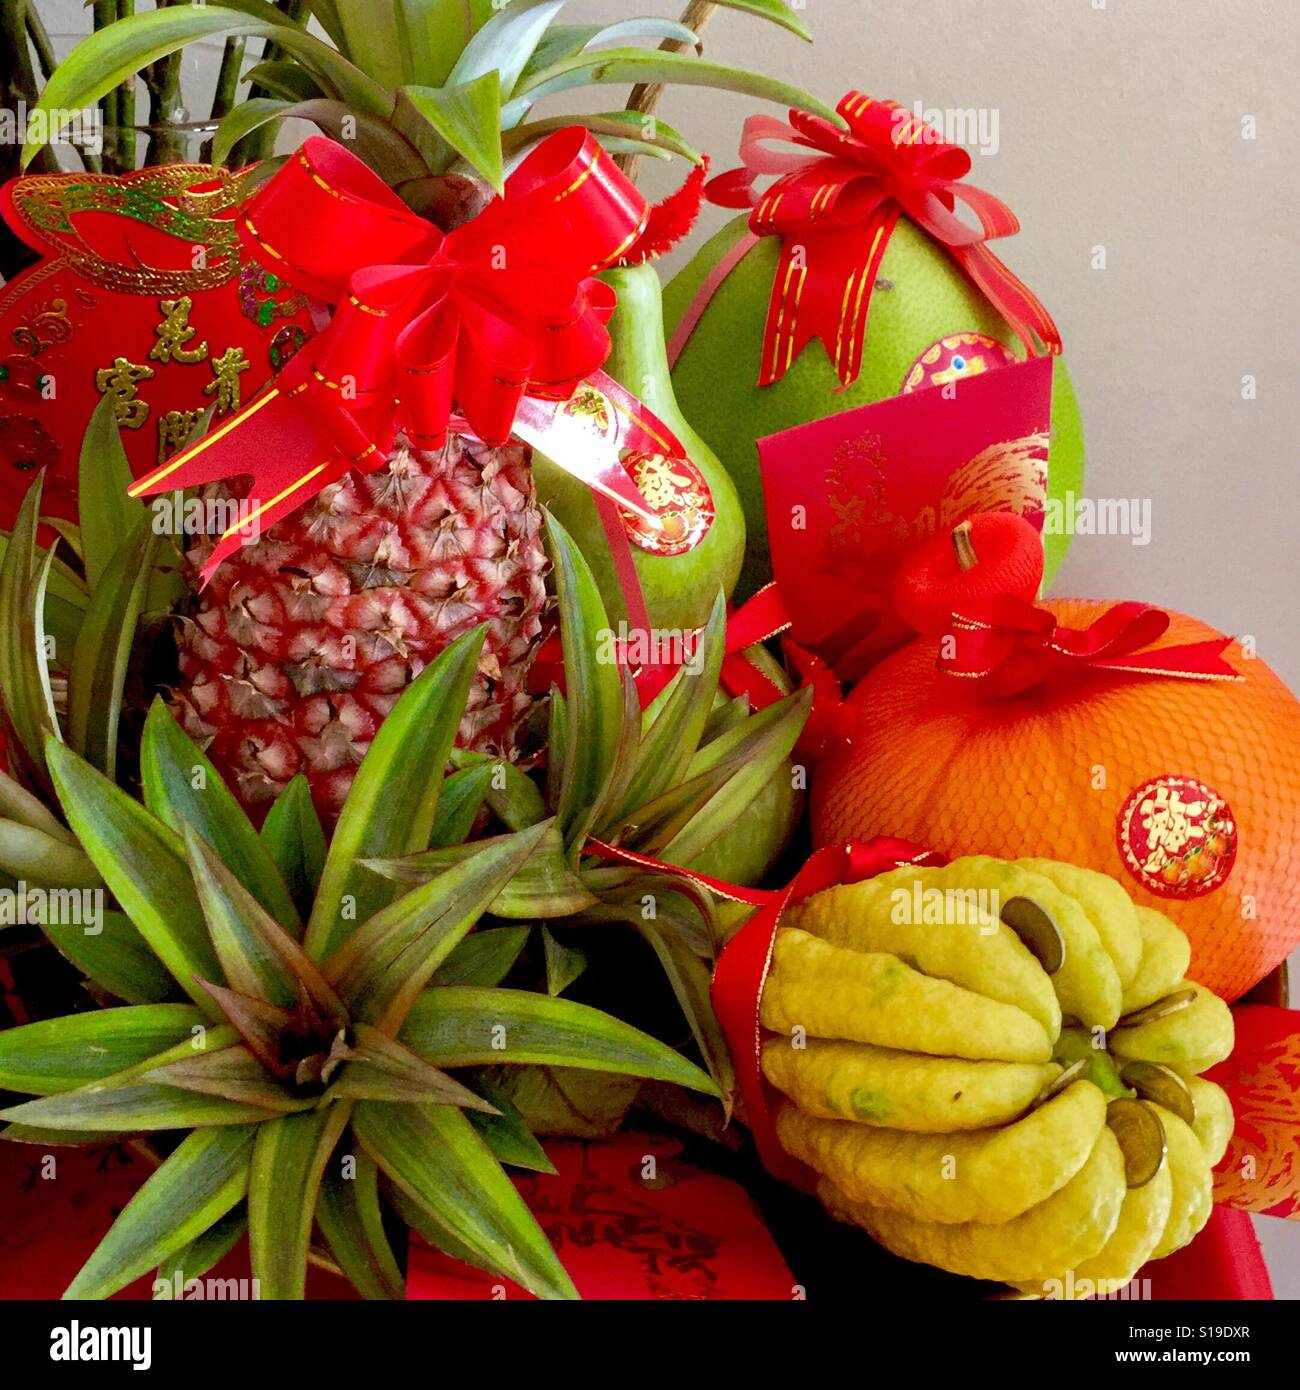 Auspicious Chinese New Year fruits  - Pineapple, Buddha's hand, Pumpkin, gourd  and pamelo - Stock Image